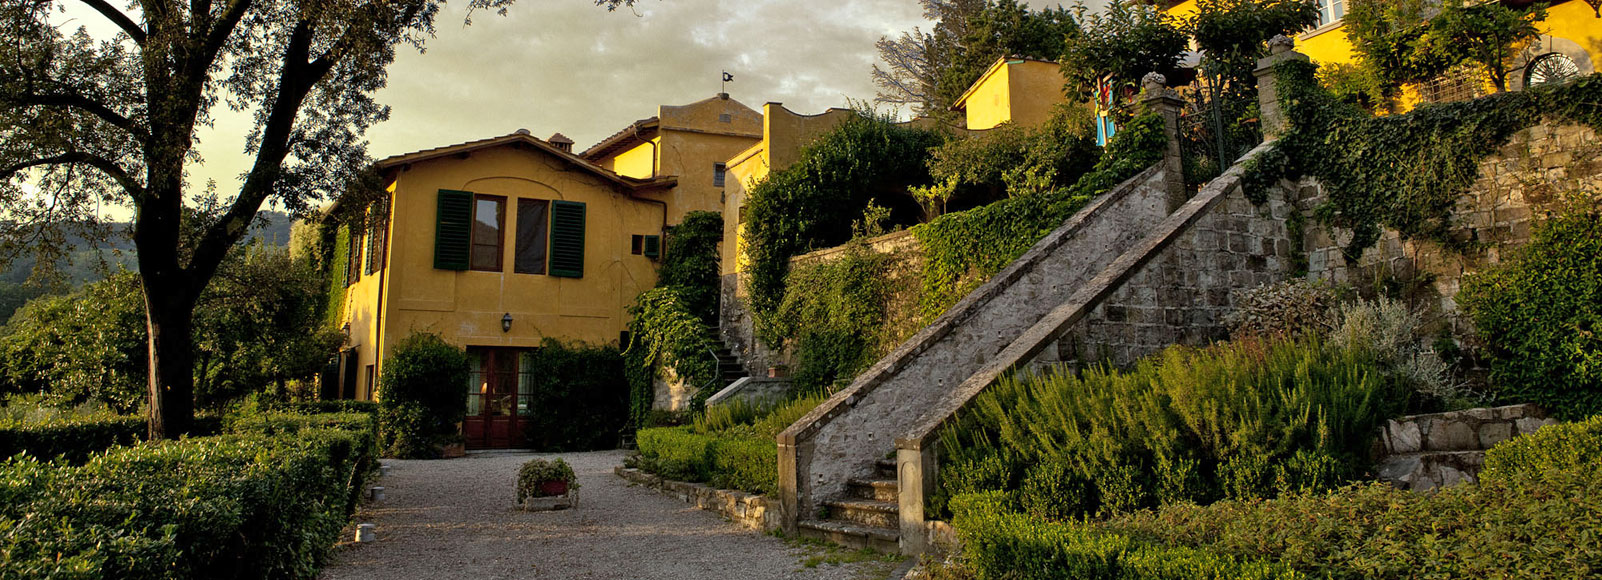 Villa di Campolungo Bed and Breakfast Agriturismo Eco Sostenibile - Fiesole